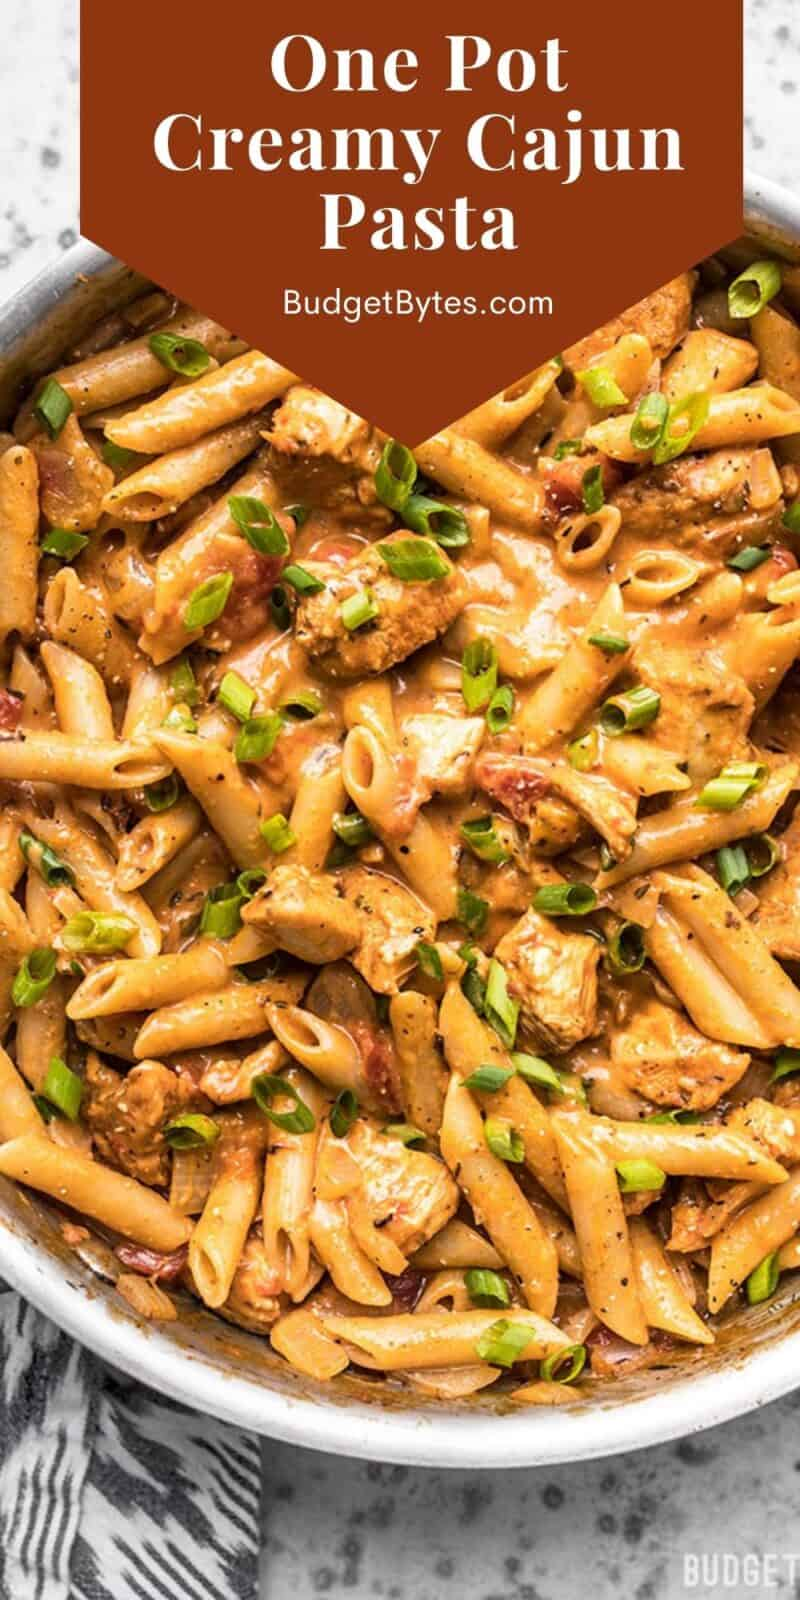 Overhead view of a skillet full of cajun chicken pasta